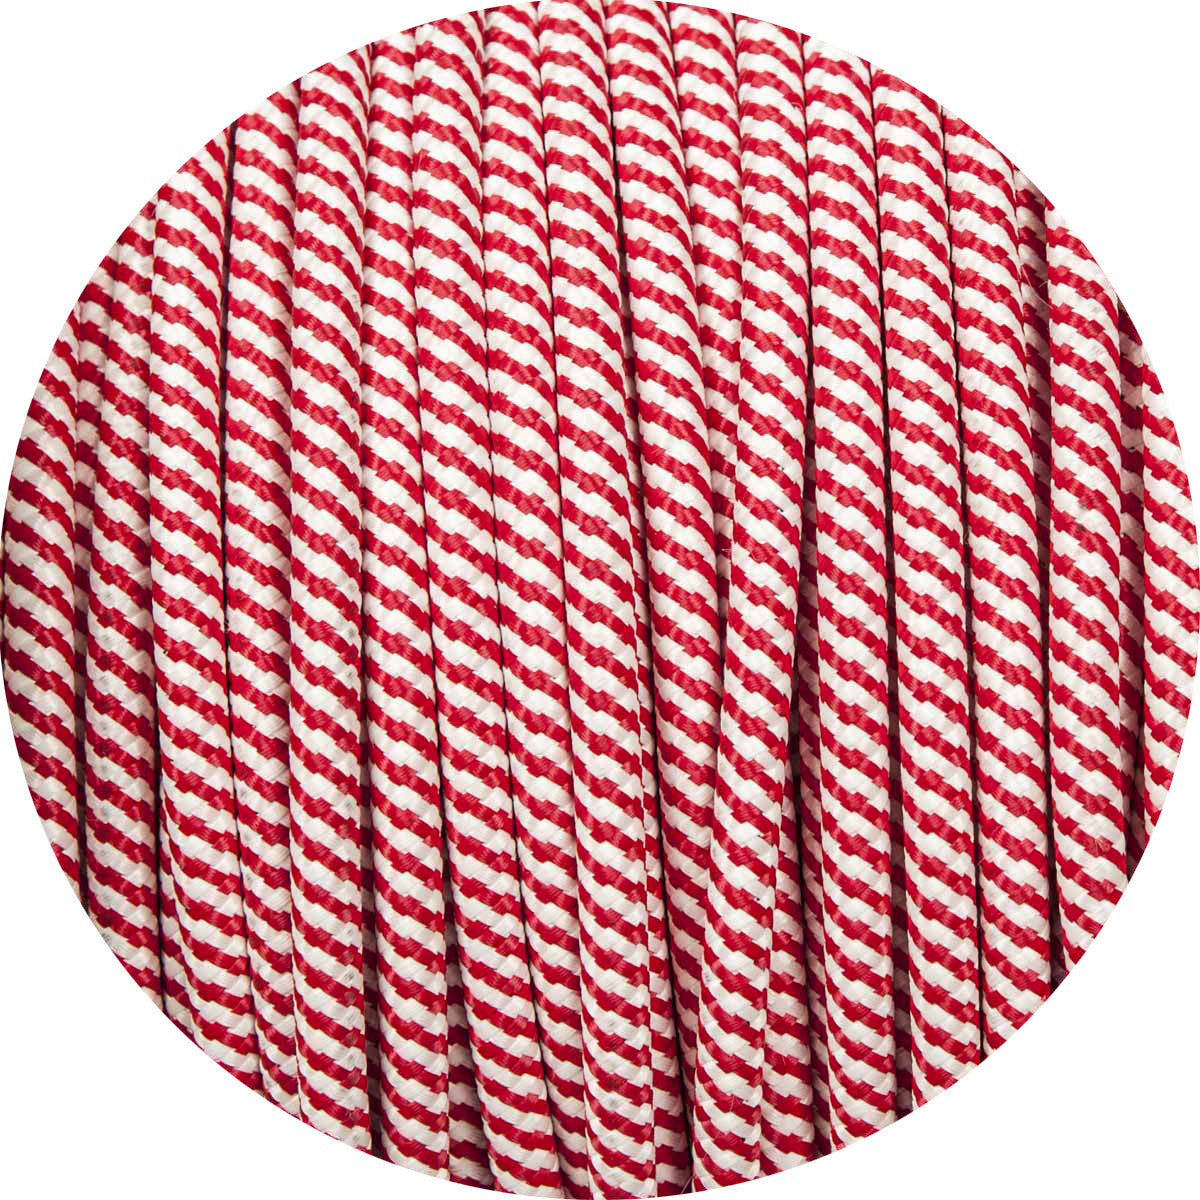 SHOP RED & WHITE SPIRAL ROUND FABRIC BRAIDED CABLE